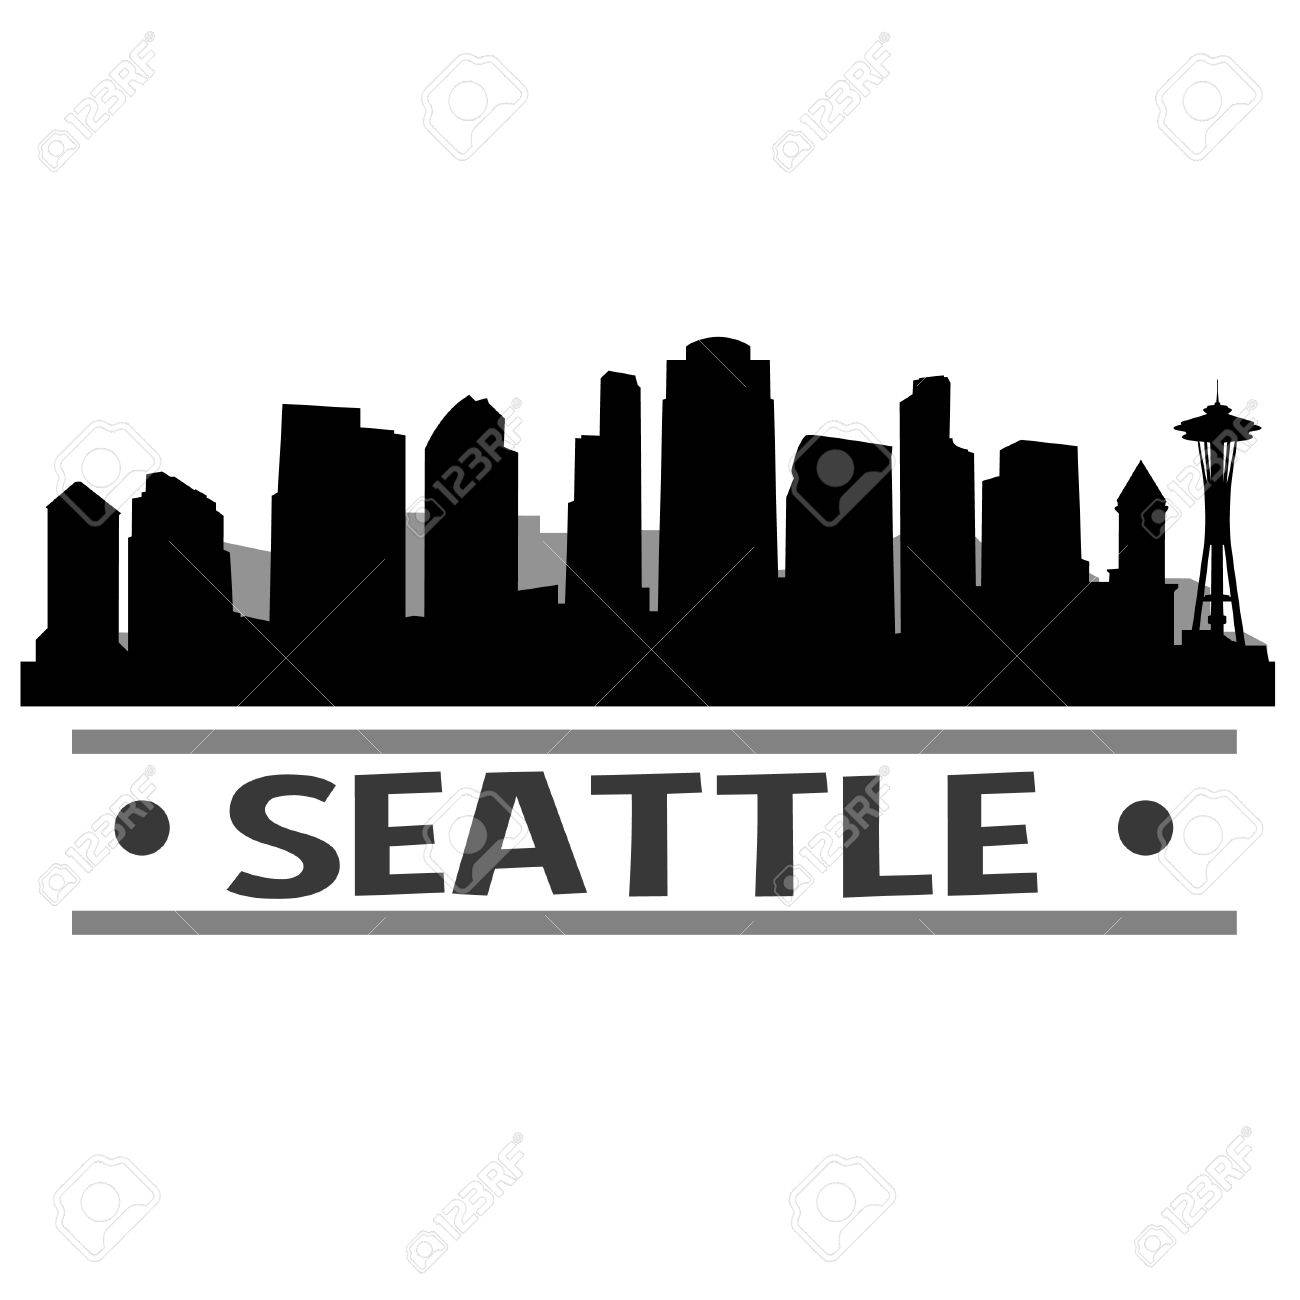 seattle skyline vector art city design royalty free cliparts rh 123rf com seattle skyline outline vector Philadelphia Skyline Vector